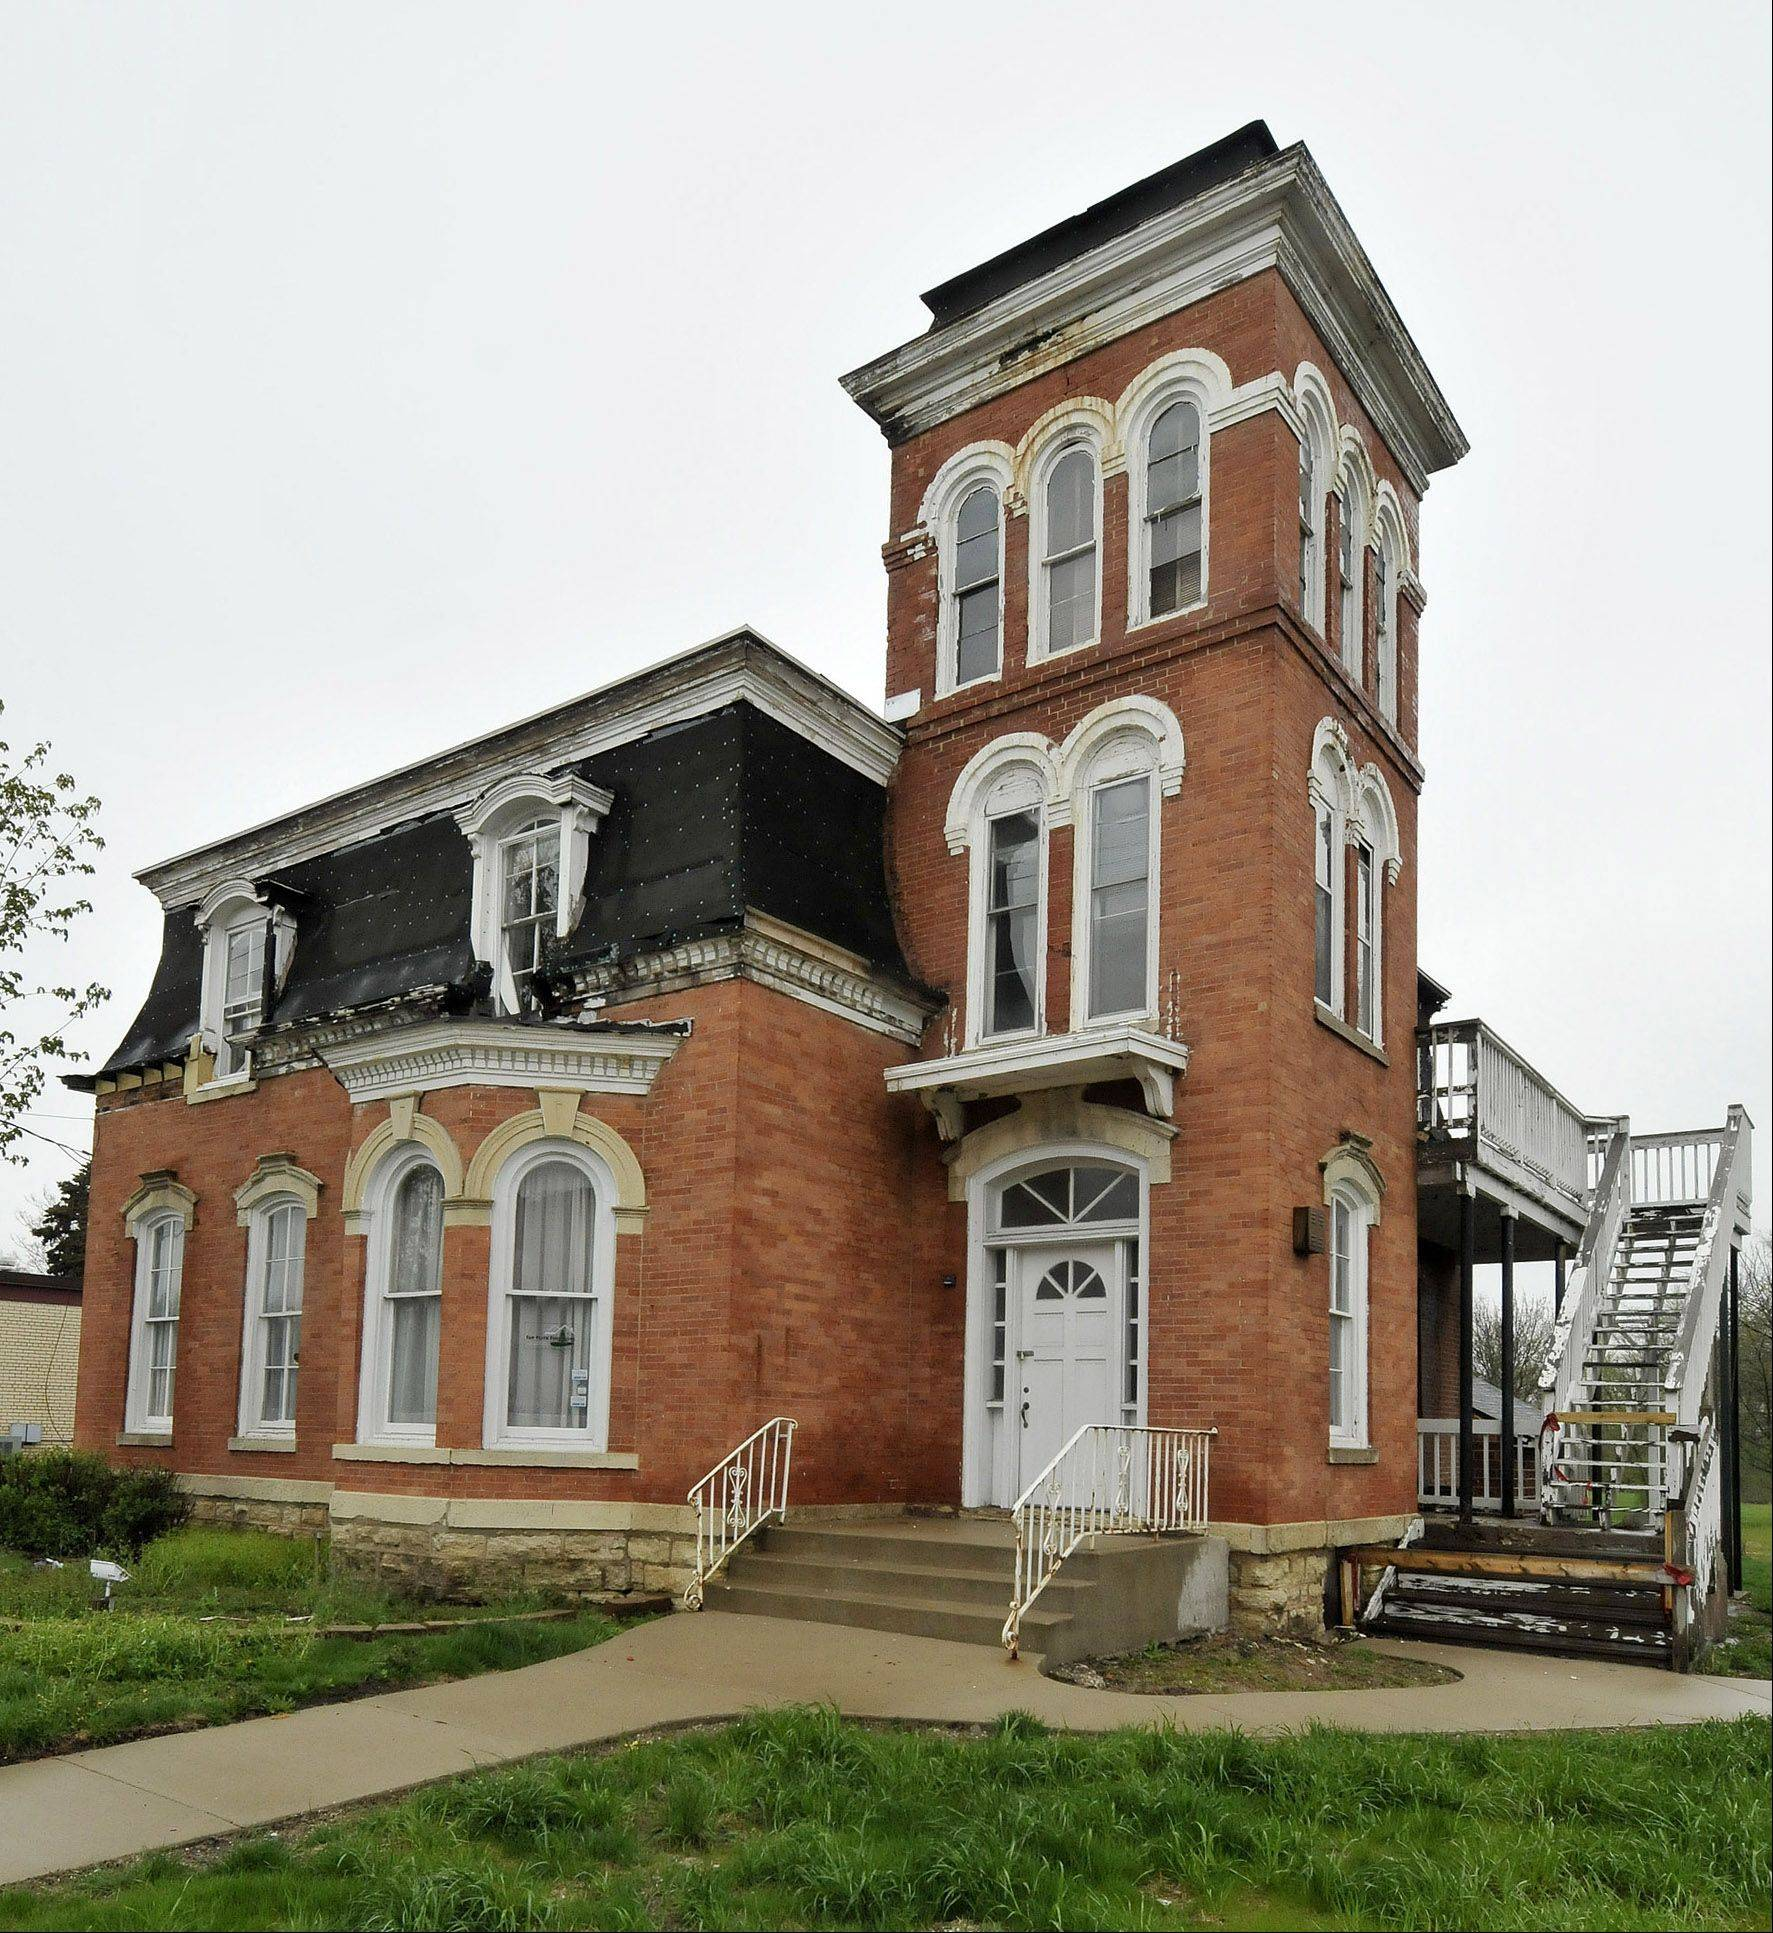 West Chicago officials are taking their request to demolish the Joel Wiant House to the city council after a local historical preservation commission rejected the plan.